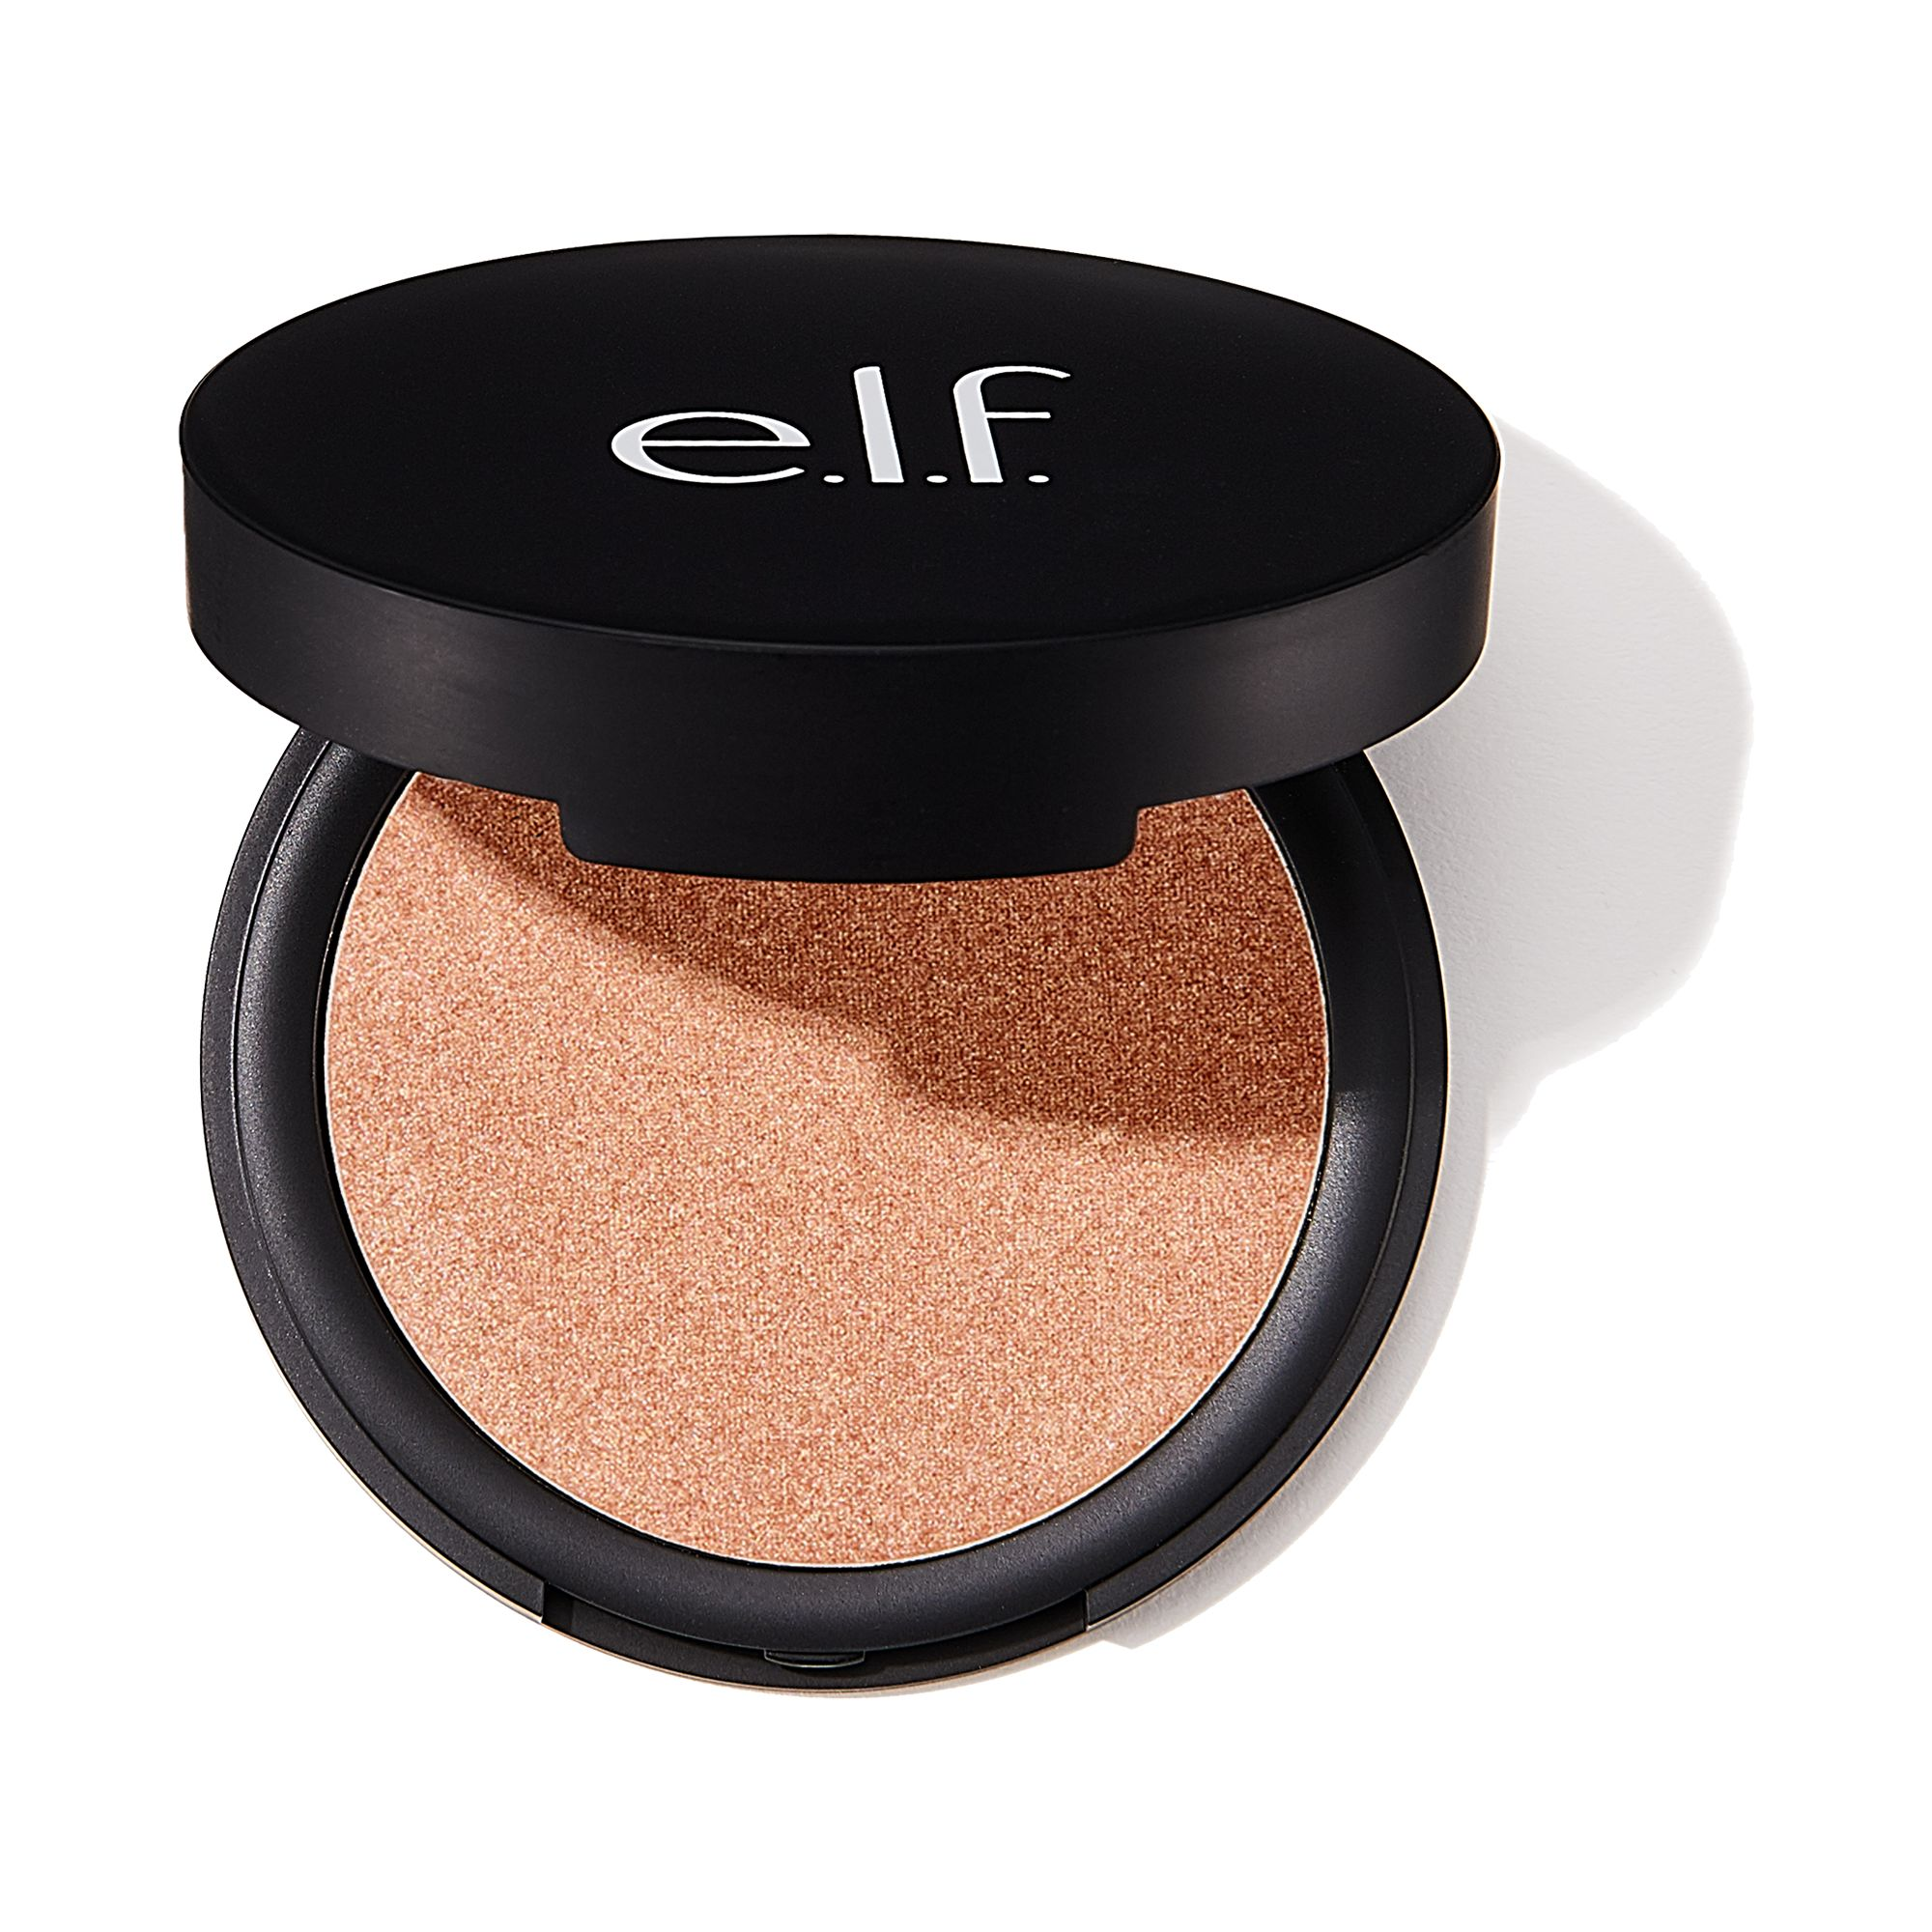 Elf Highlighting Powder Topaz Glow